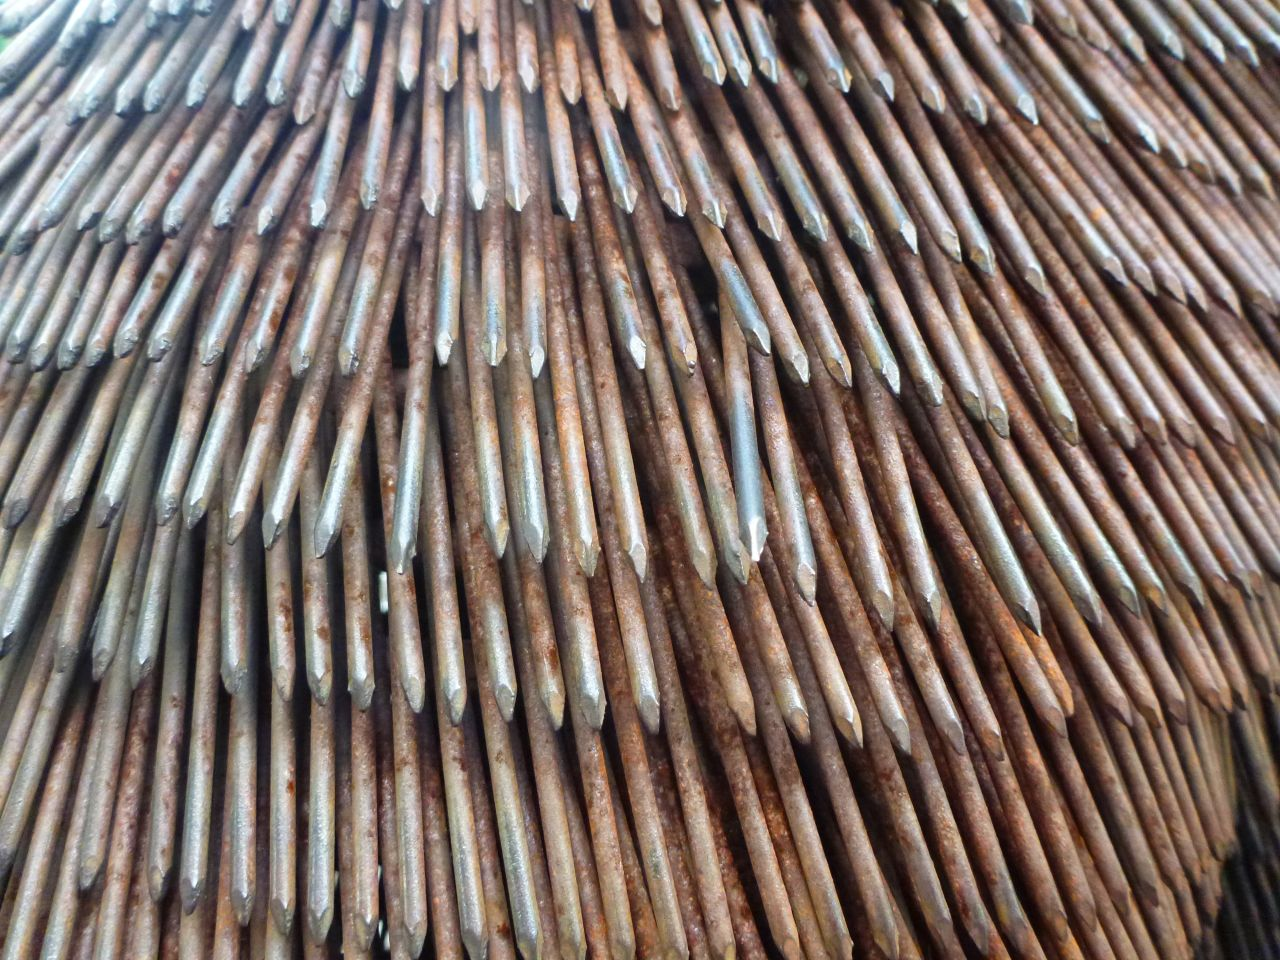 A Close Up of The Nails That Make Up The Bear Sculpture